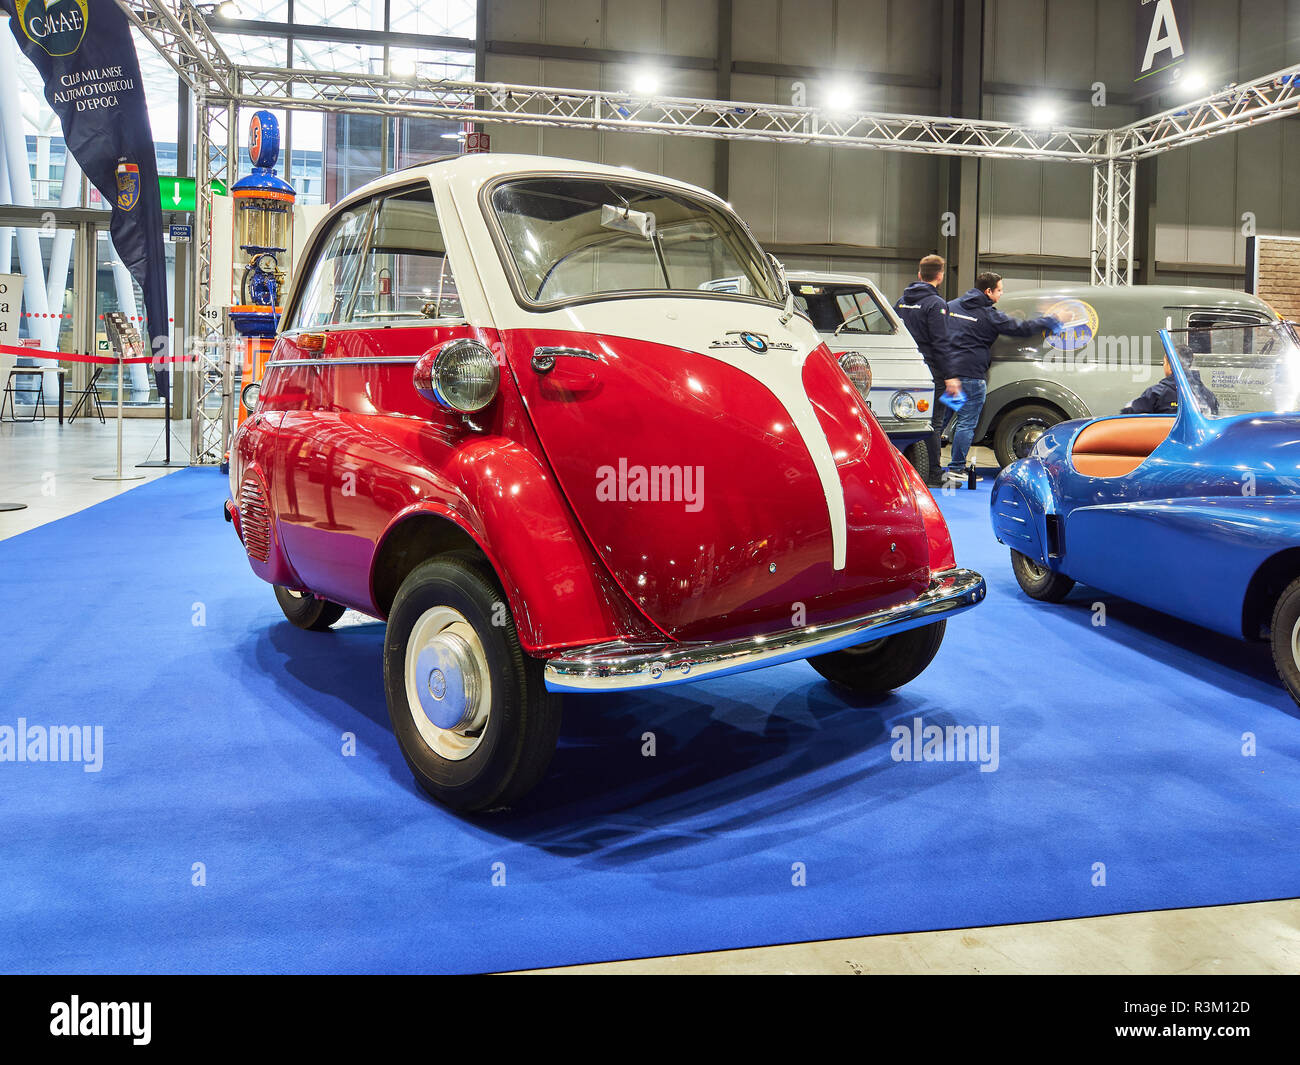 Milan, Lombardy Italy - November 23 , 2018 - BMW 300 Jetta at Autoclassica Milano 2018 edition at Fiera Milano Rho Credit: Armando Borges/Alamy Live News - Stock Image